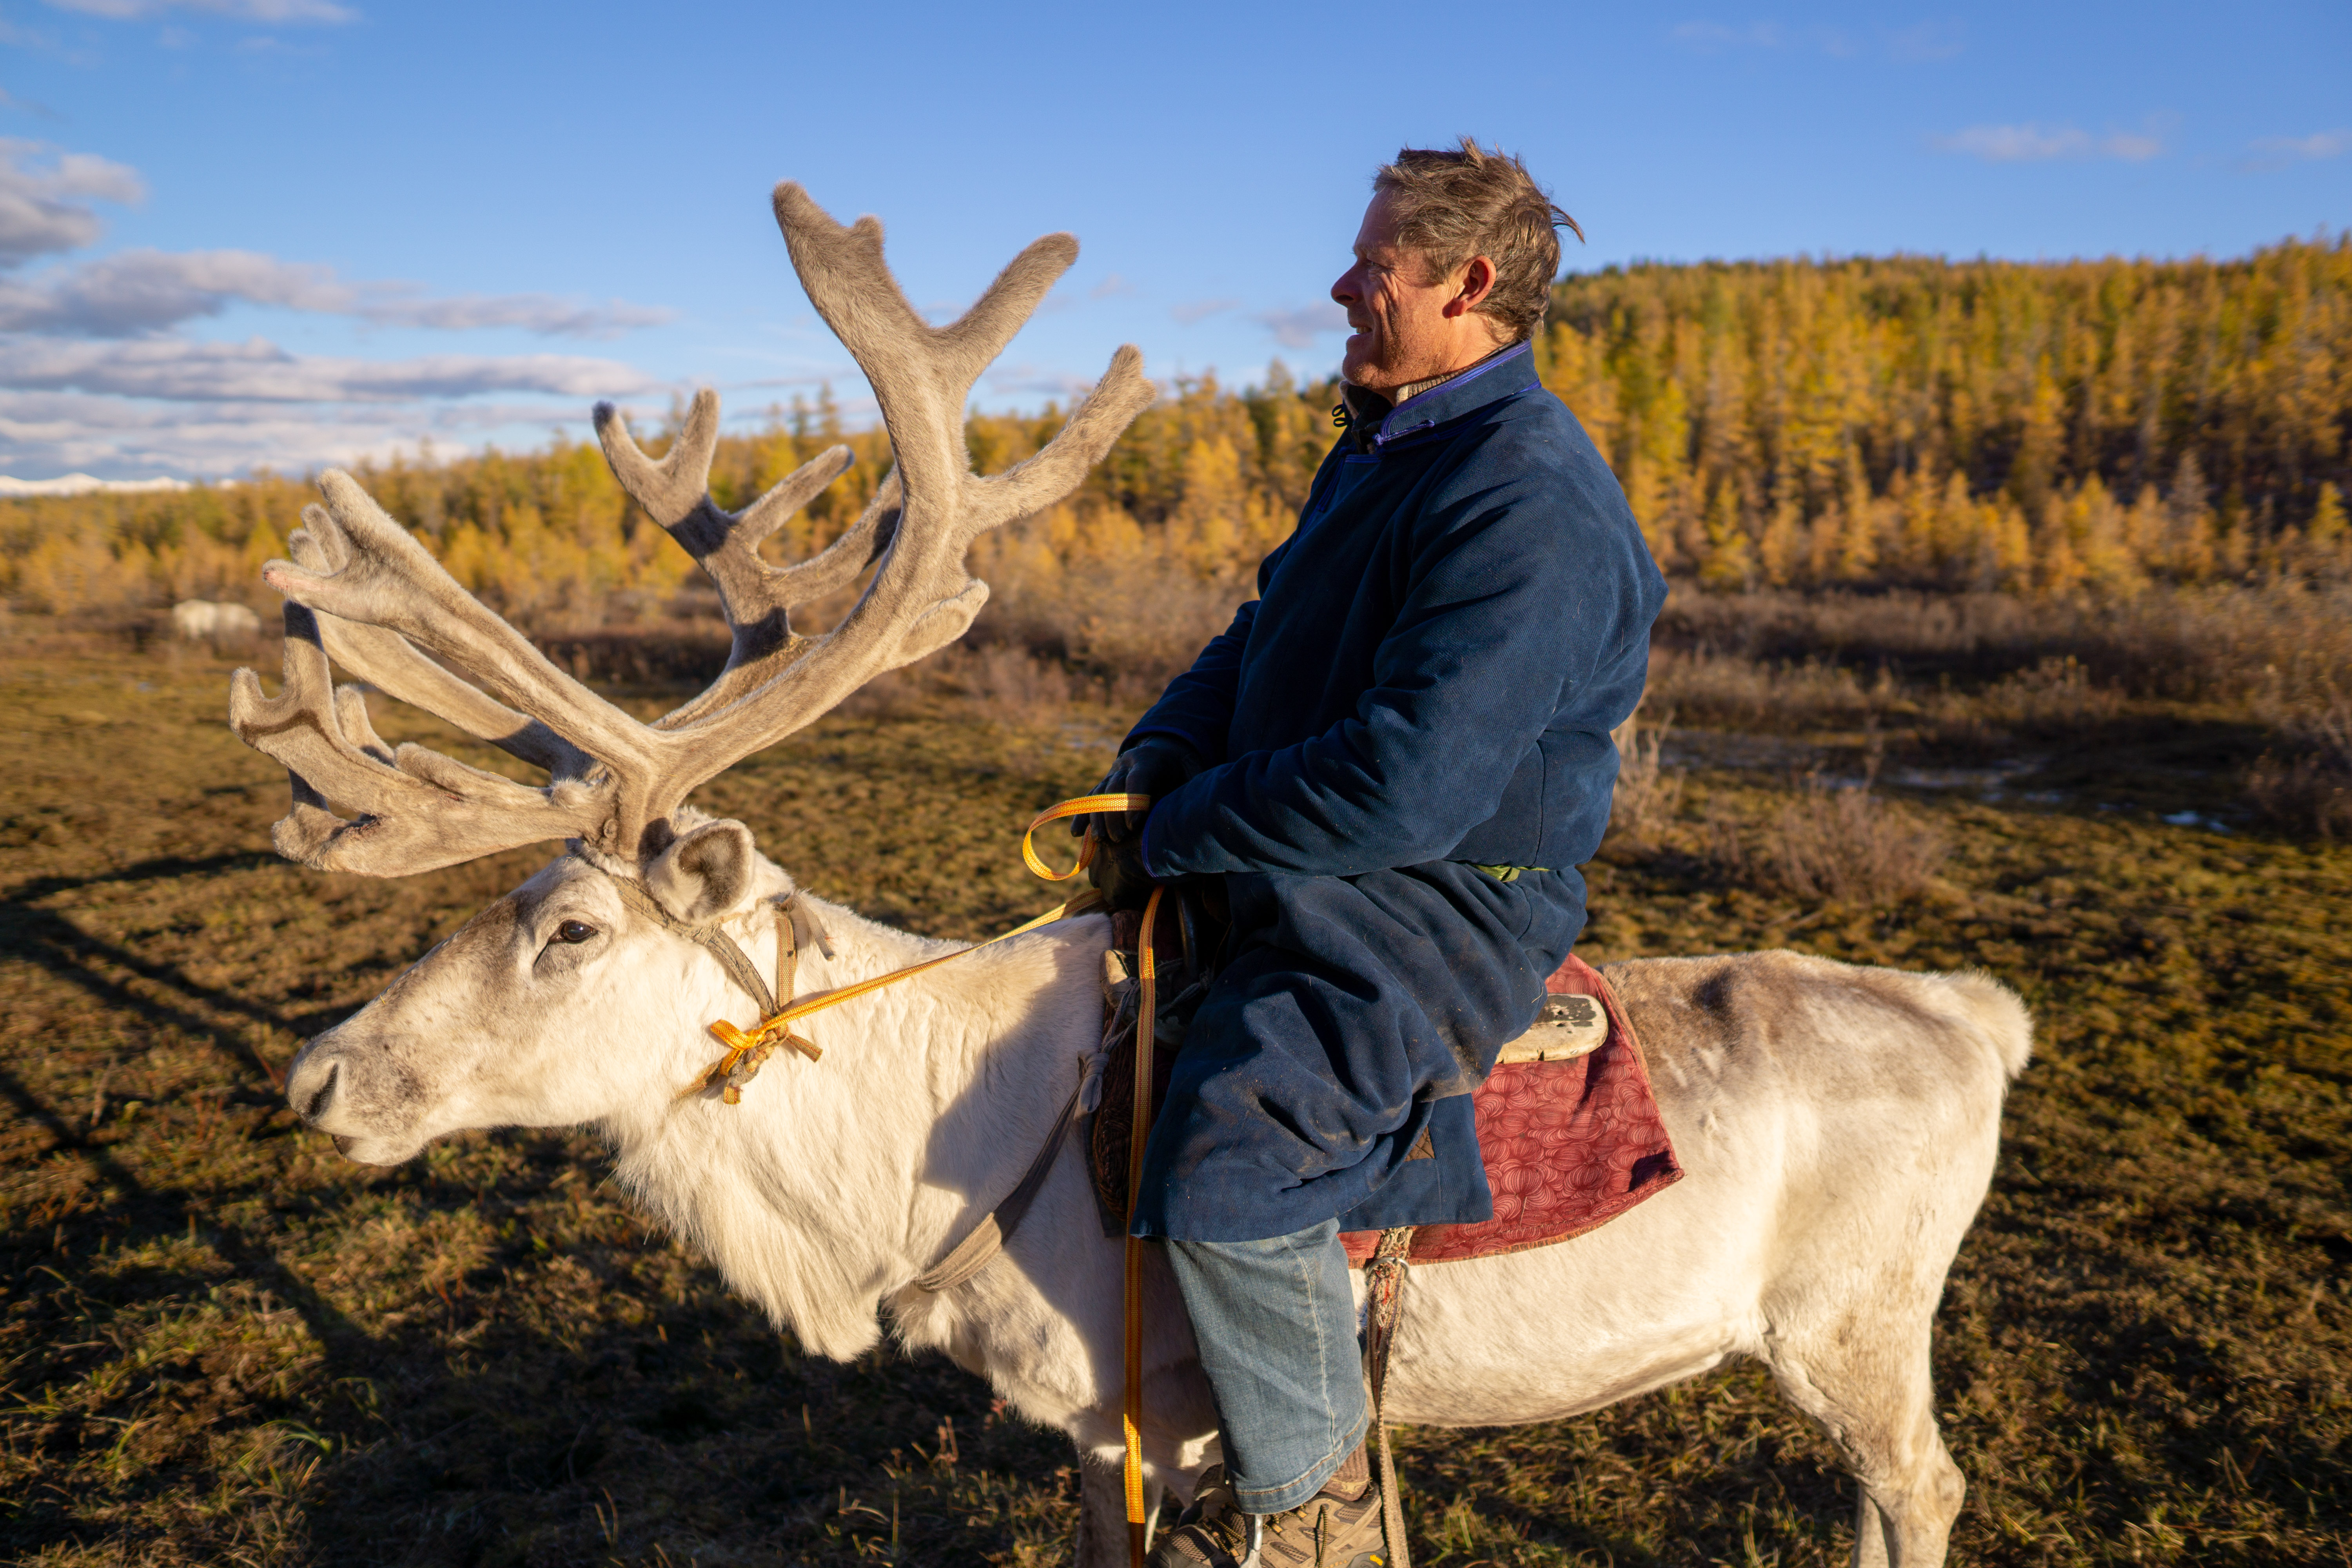 Reindeer riding in Northern Mongolia with Estancia Ranquilco